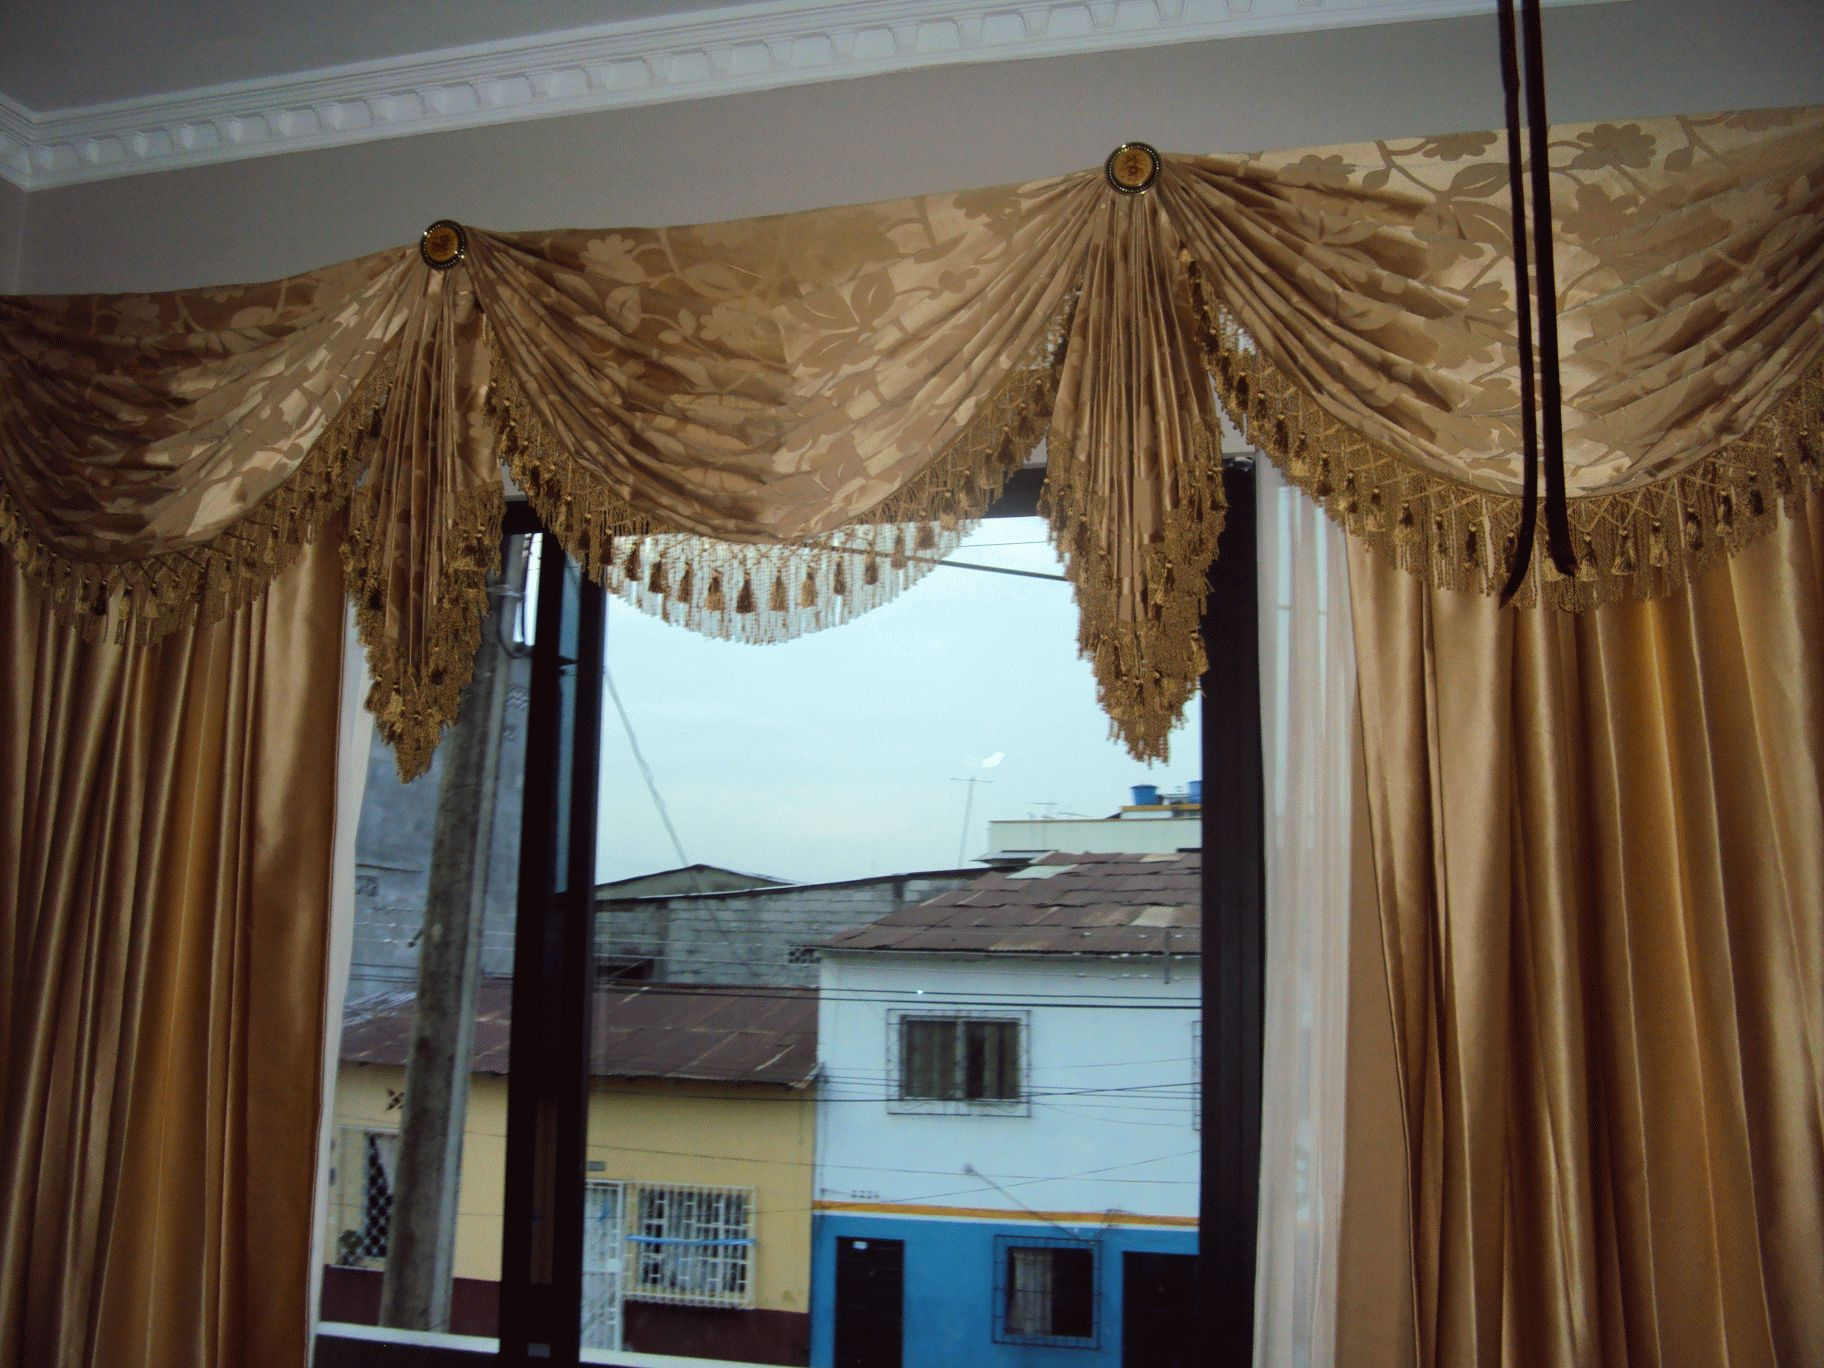 Avisos fotos videos almacenes de cortinas dise os del hogar for Cortinas amarillas